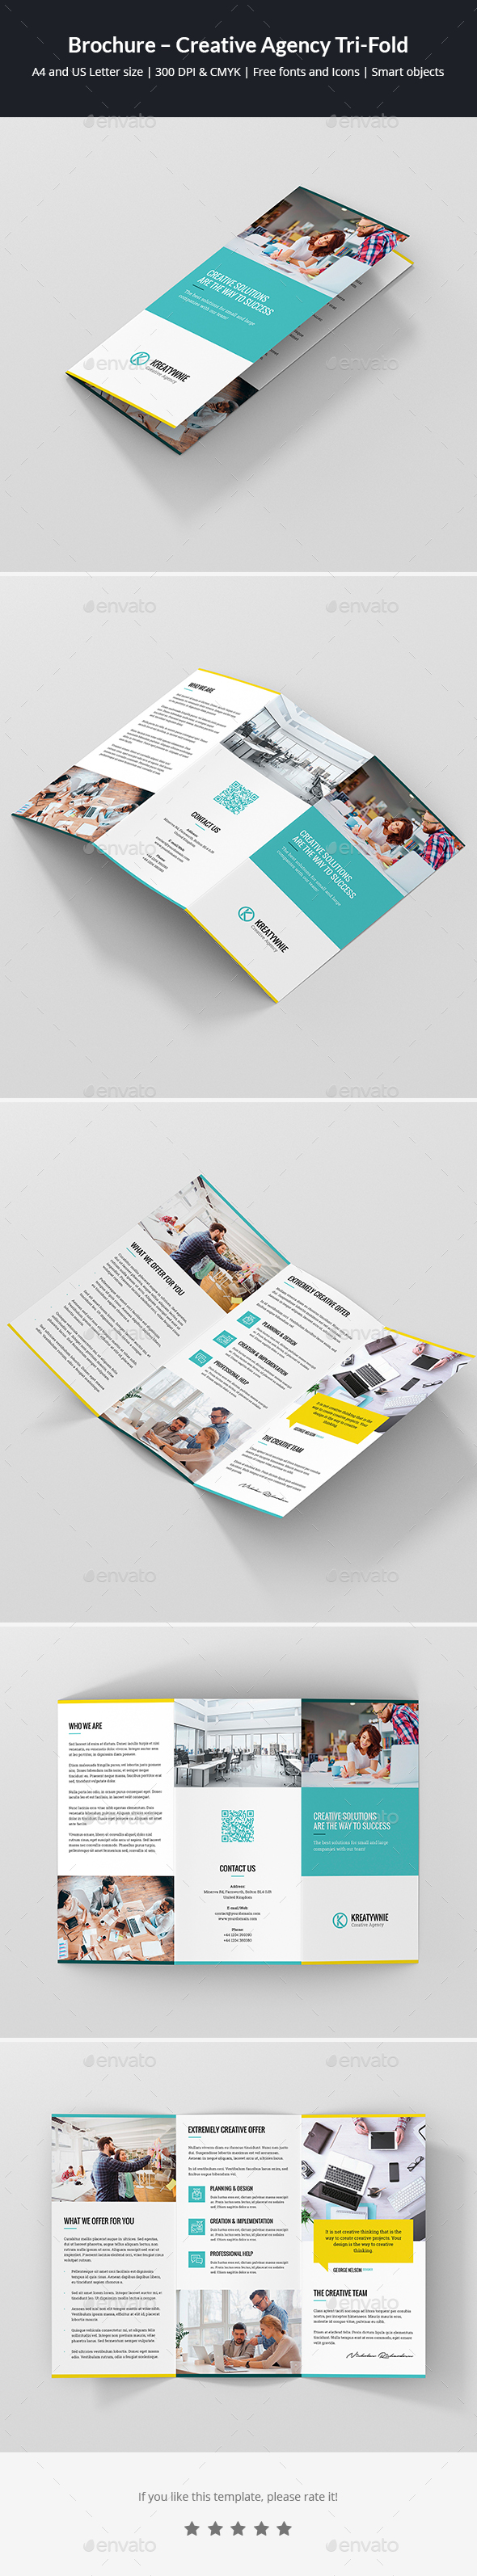 GraphicRiver Brochure Creative Agency Tri-Fold 21108557